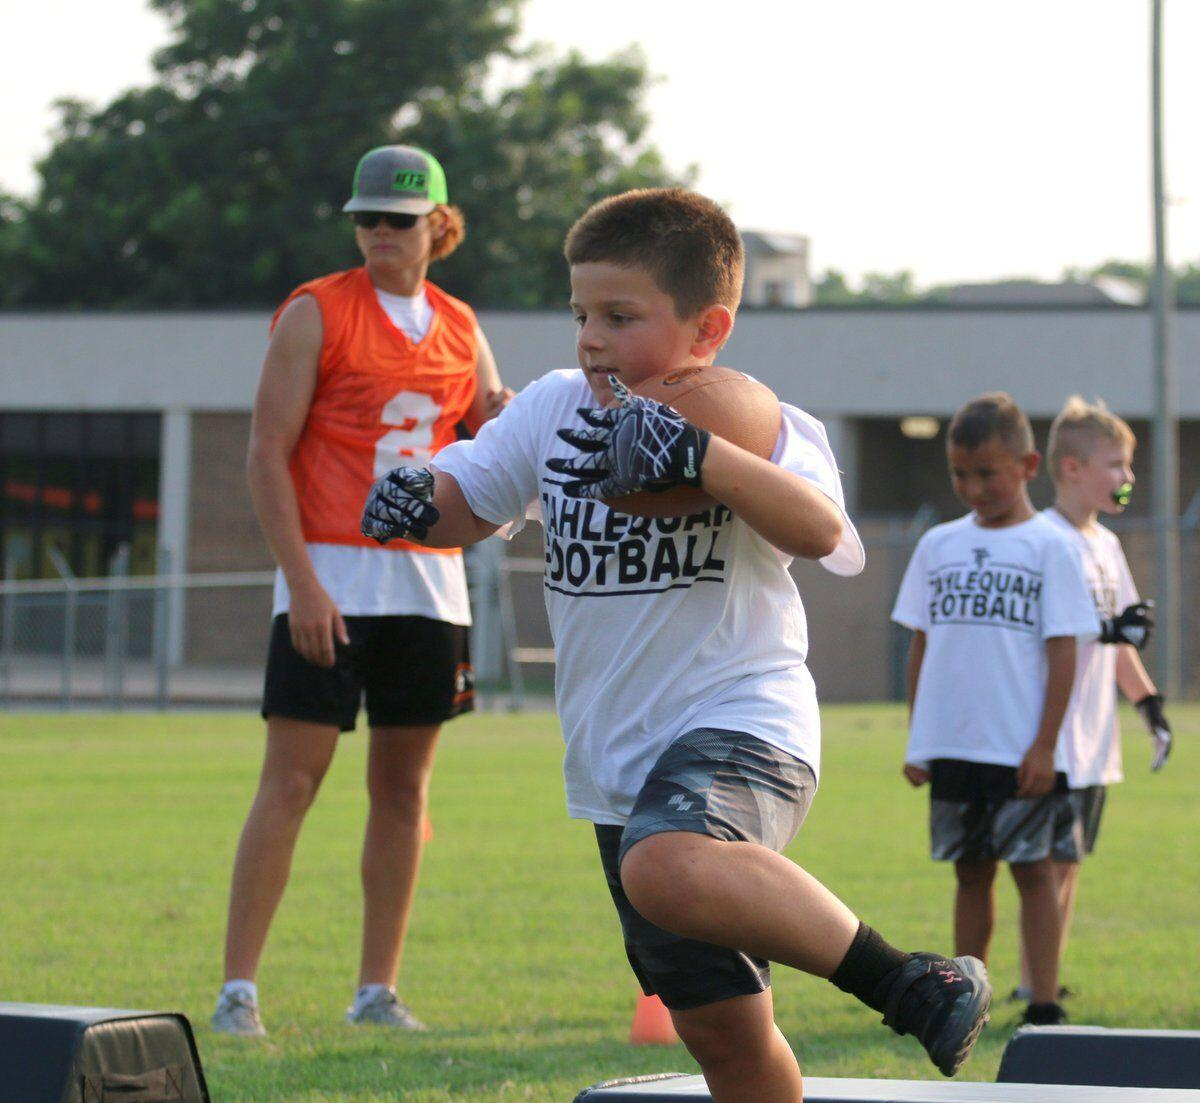 MORE SUCCESS: Tahlequah Youth Football Camp has huge turnout